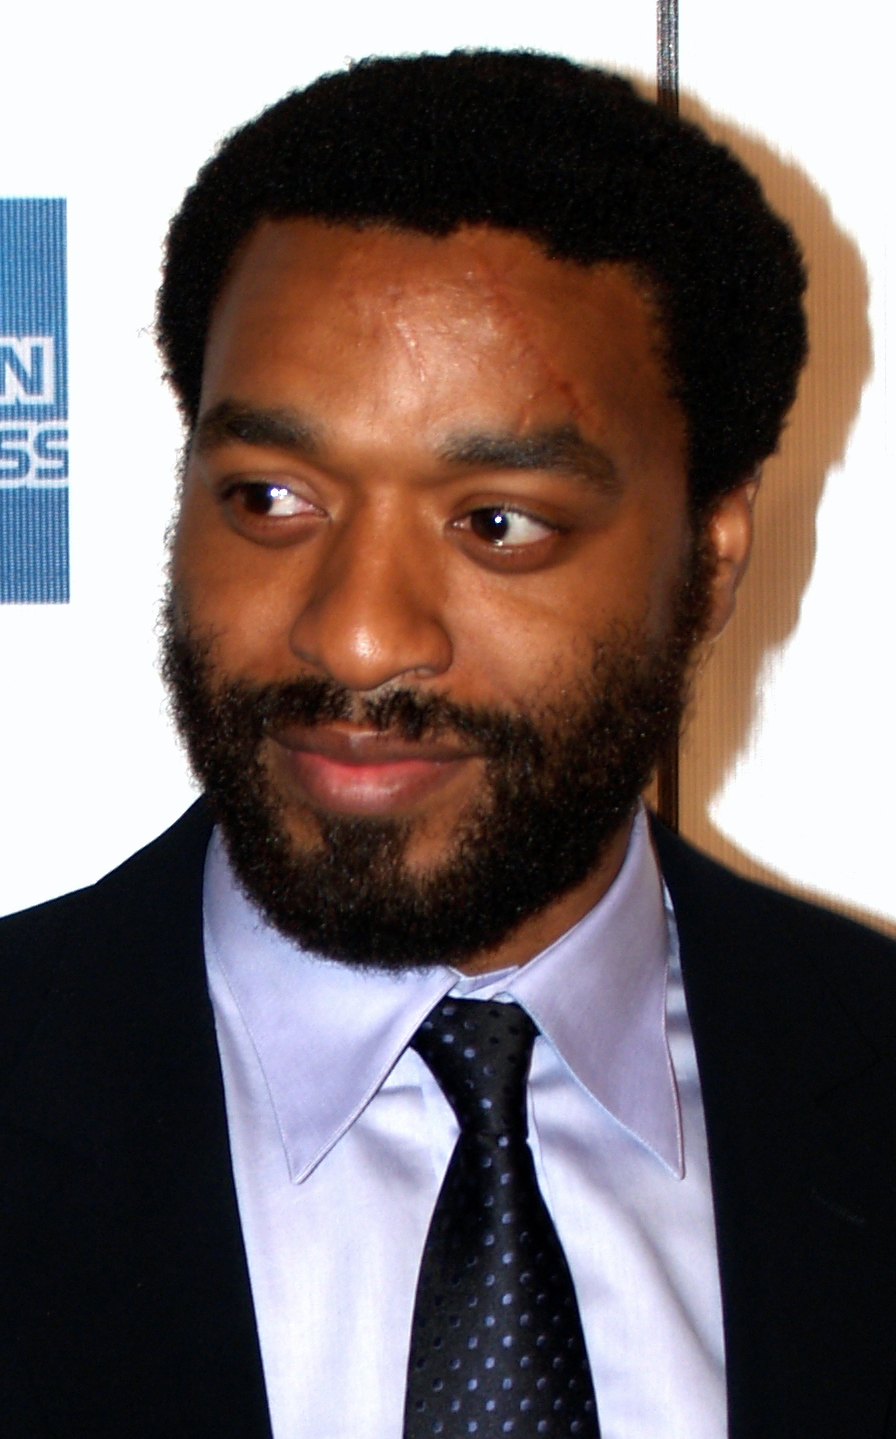 The 44-year old son of father Arinze Ejiofor and mother Obiajulu Ejiofor Chiwetel Ejiofor in 2018 photo. Chiwetel Ejiofor earned a  million dollar salary - leaving the net worth at 8 million in 2018